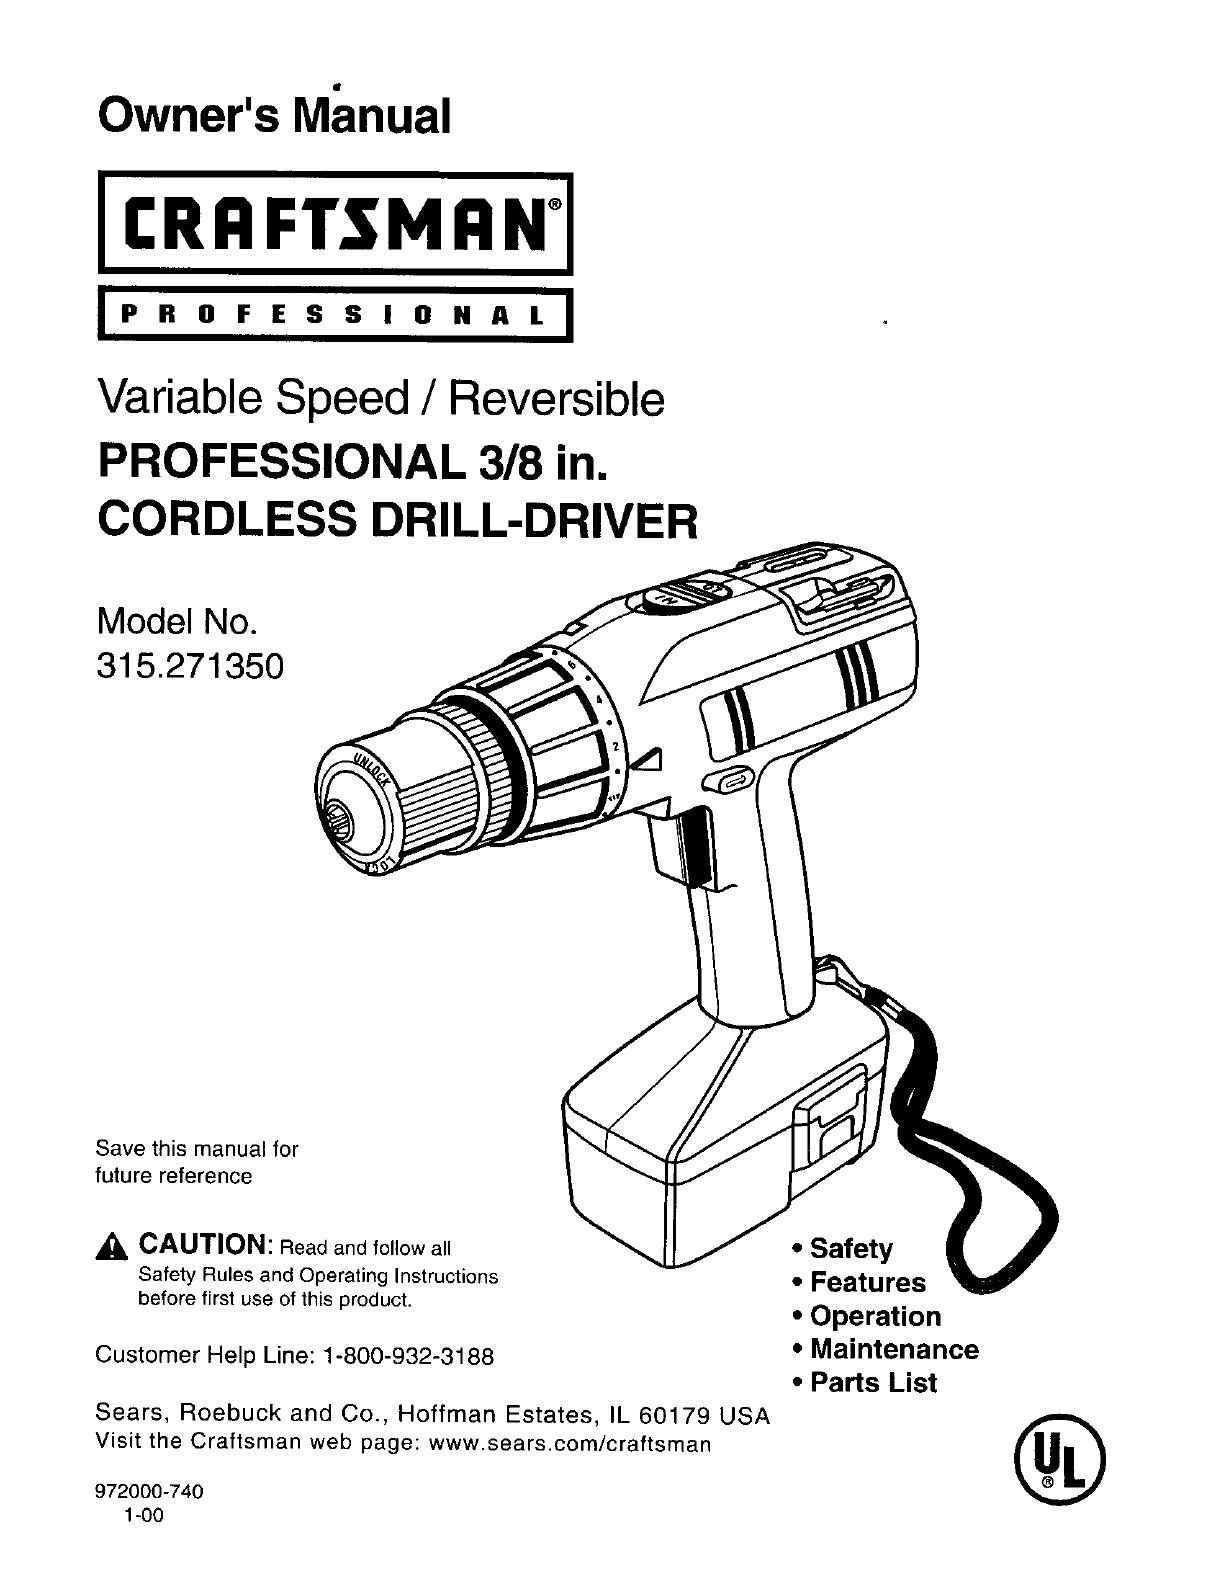 Craftsman Cordless Drill 315.27135 User Guide